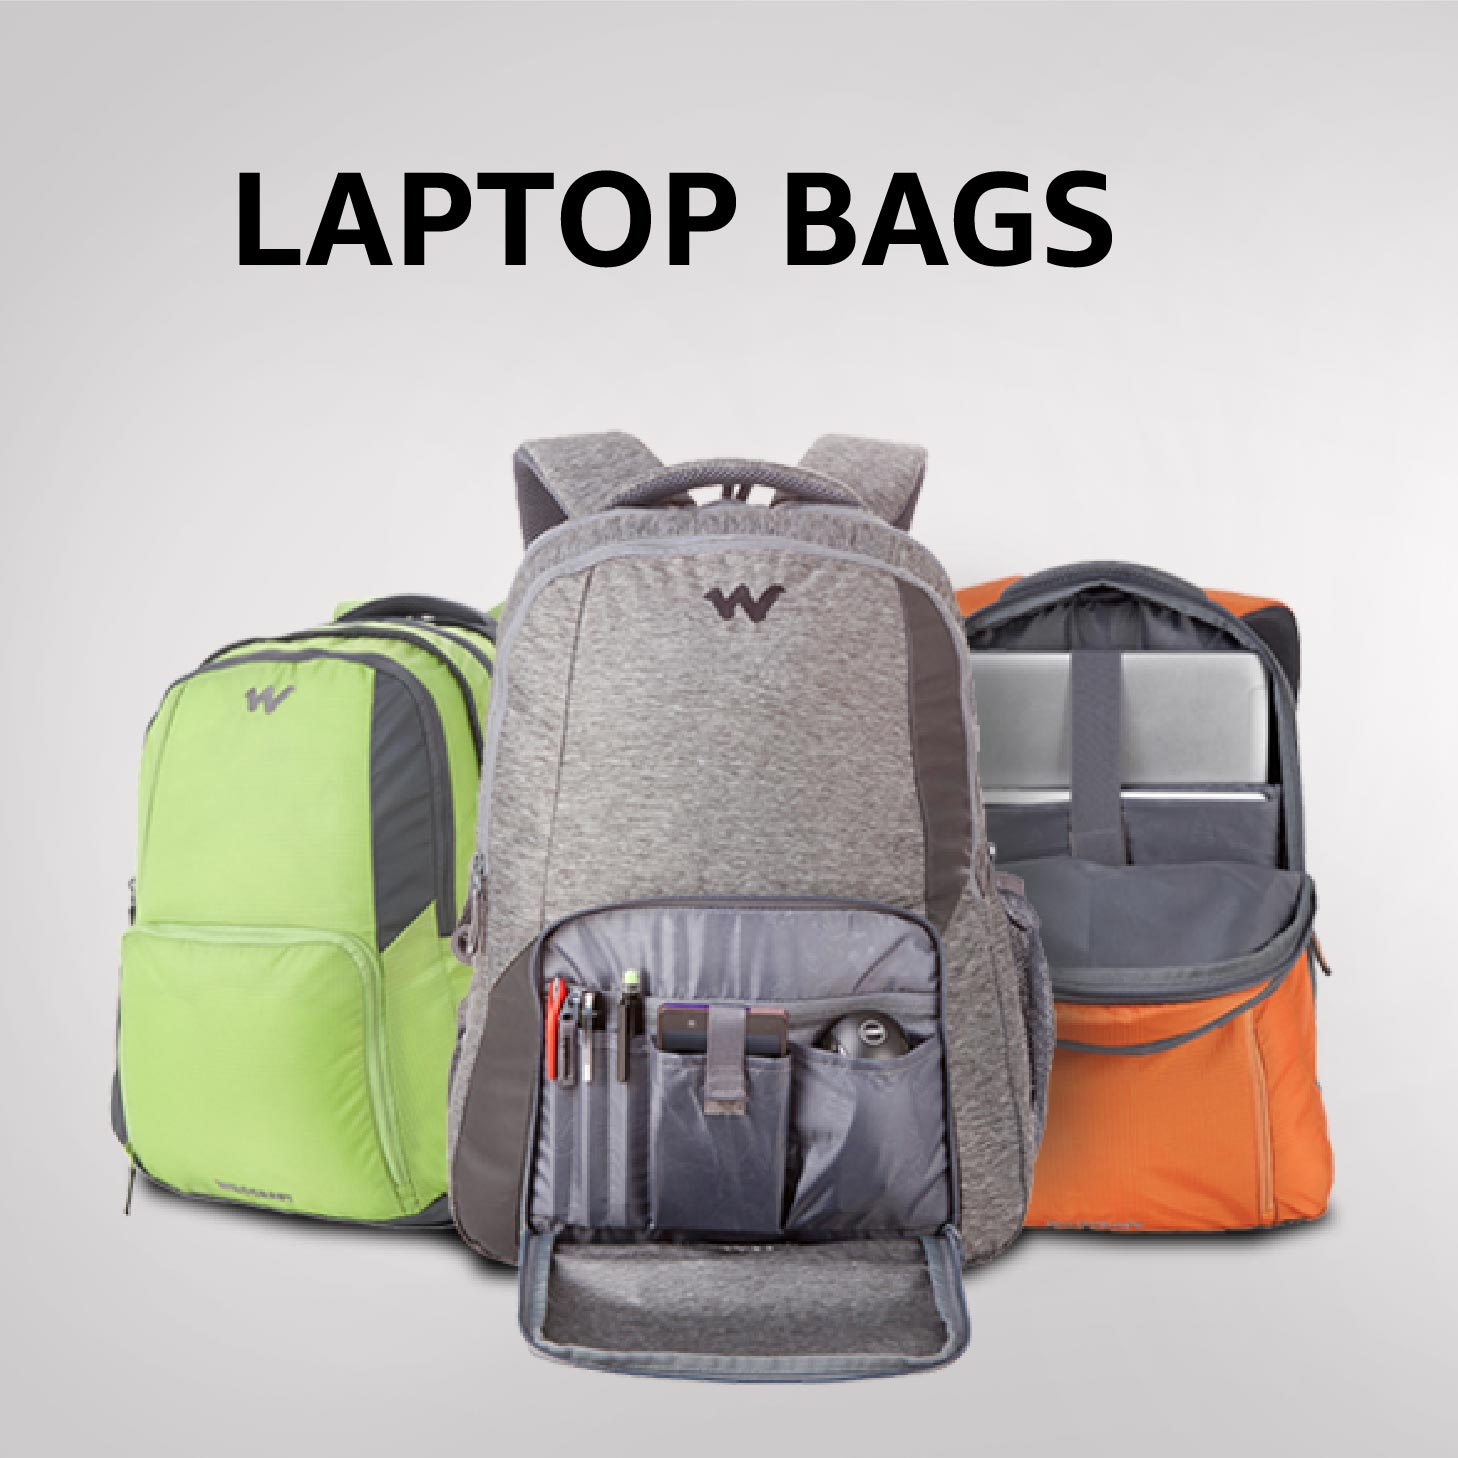 ShopClues Offer : Get upto 80% off on Backpacks